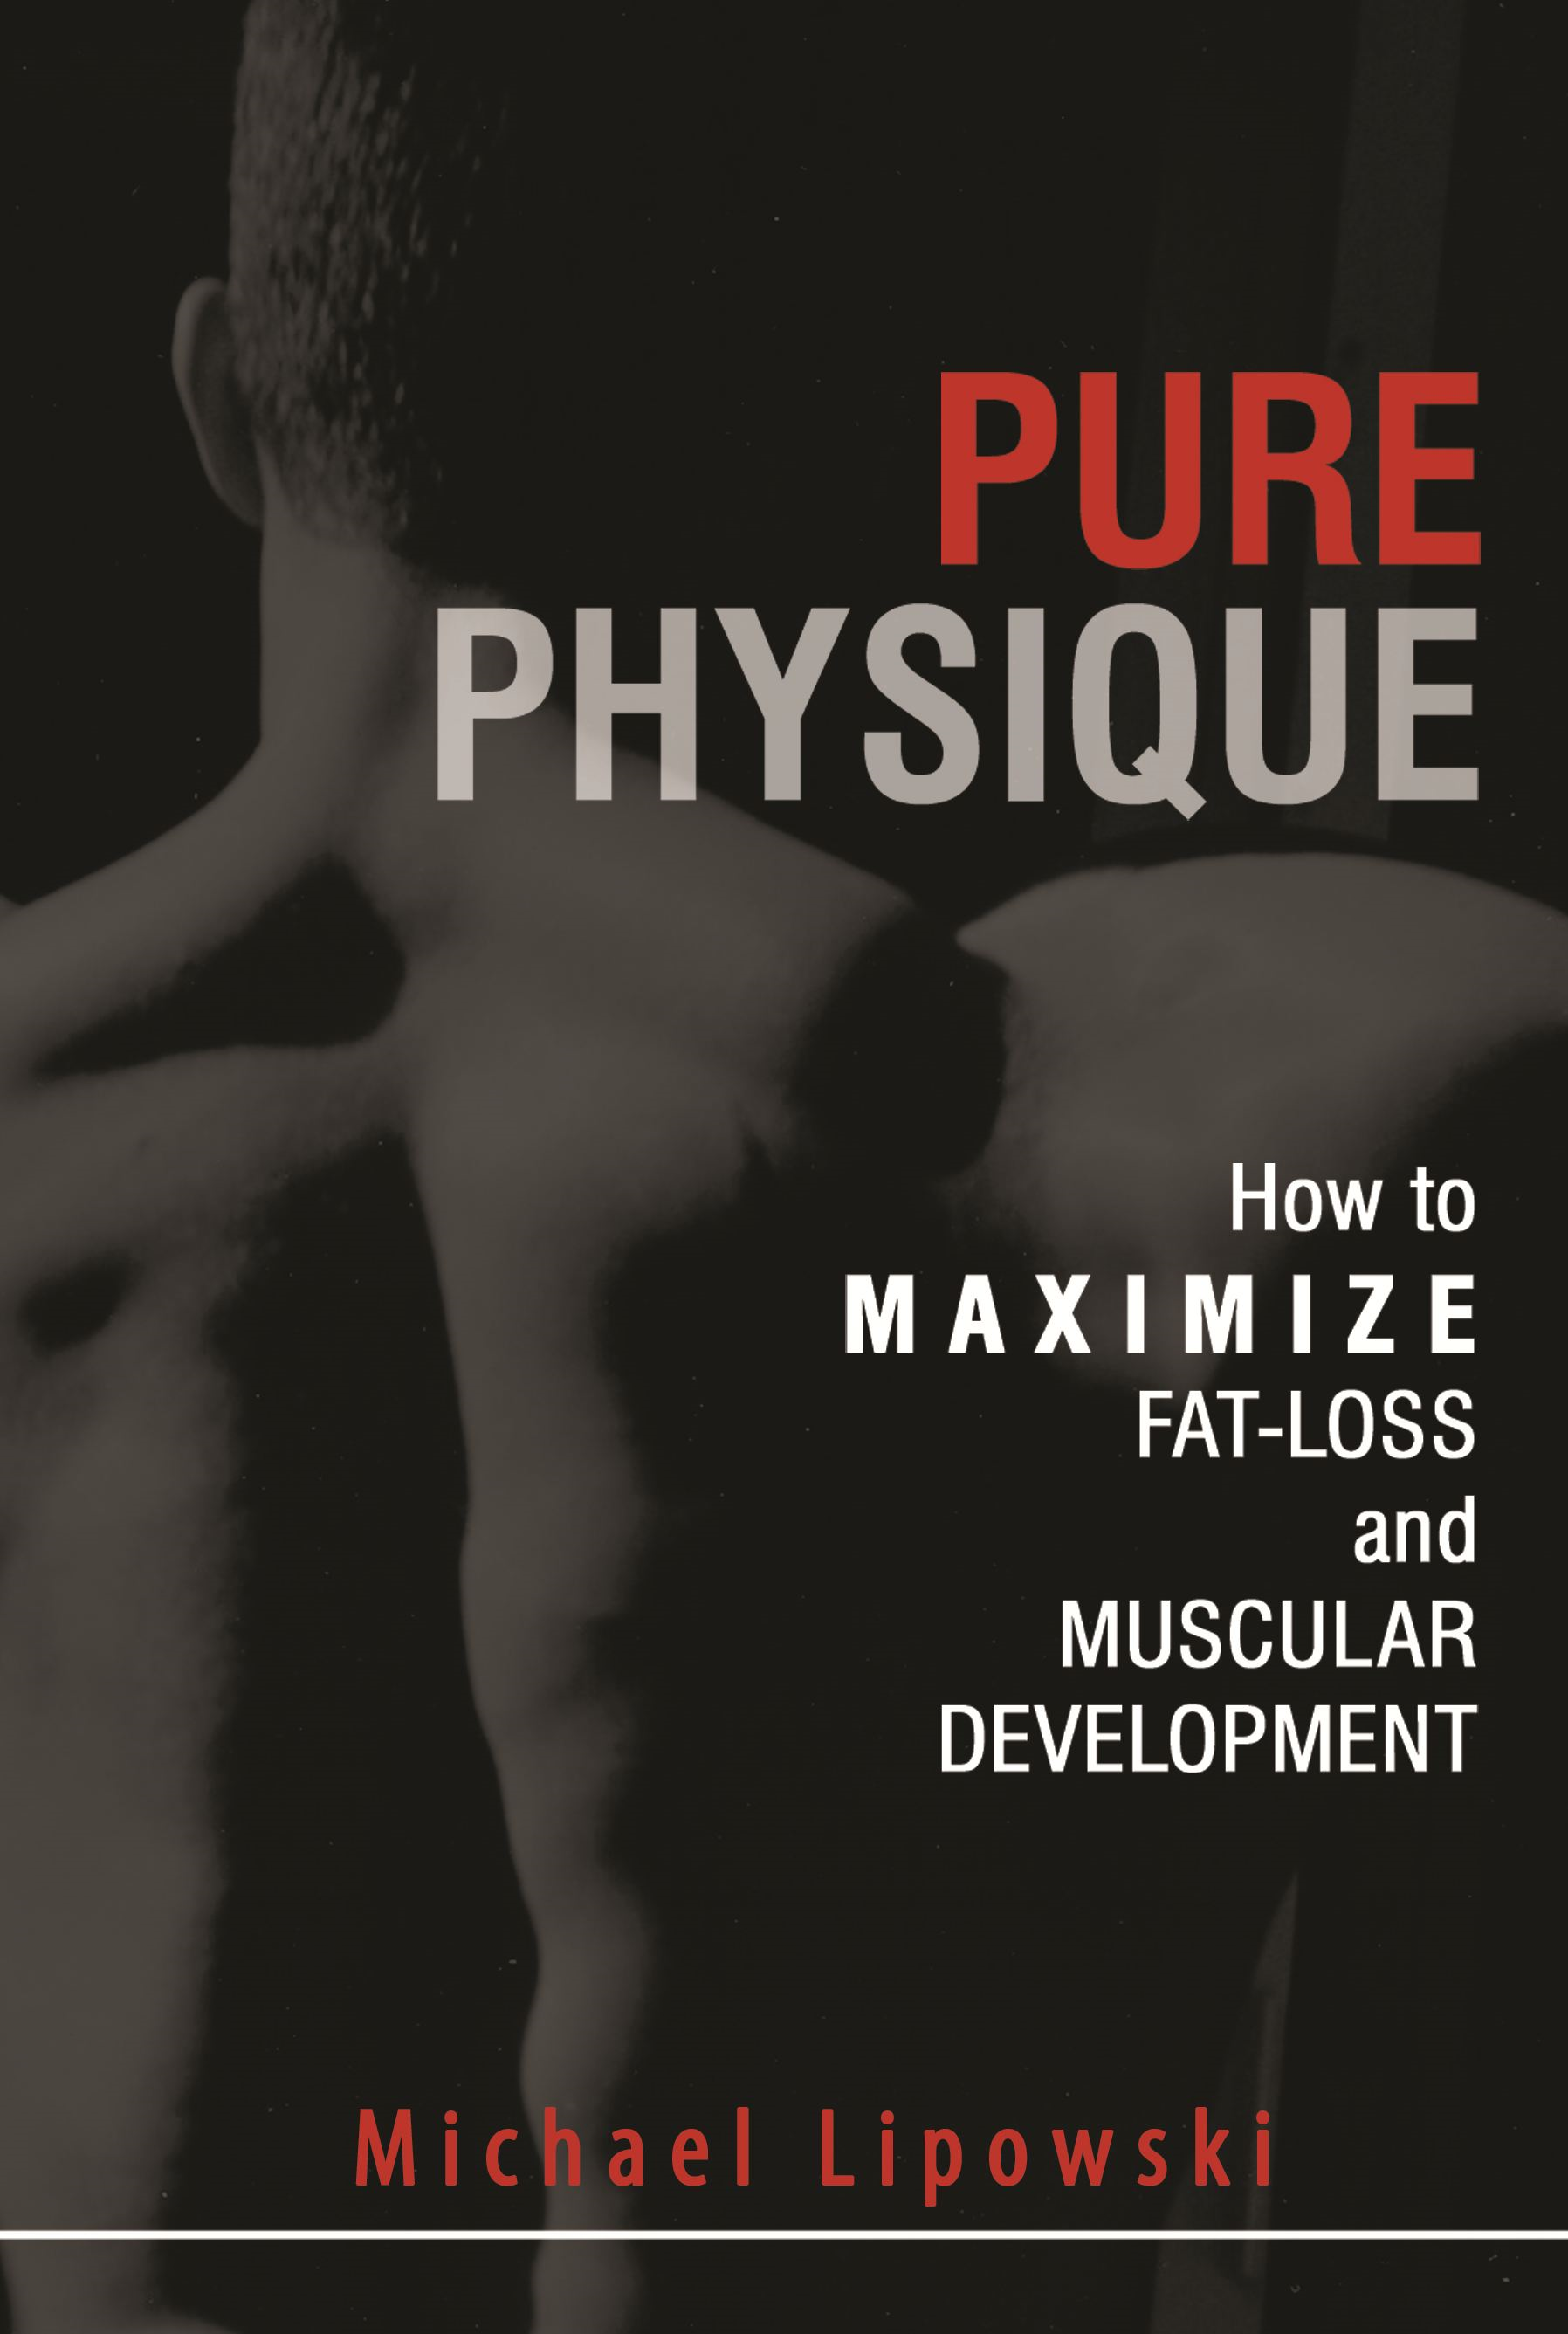 Pure Physique: How to Maximize Fat-Loss and Muscular Development By: Michael Lipowski